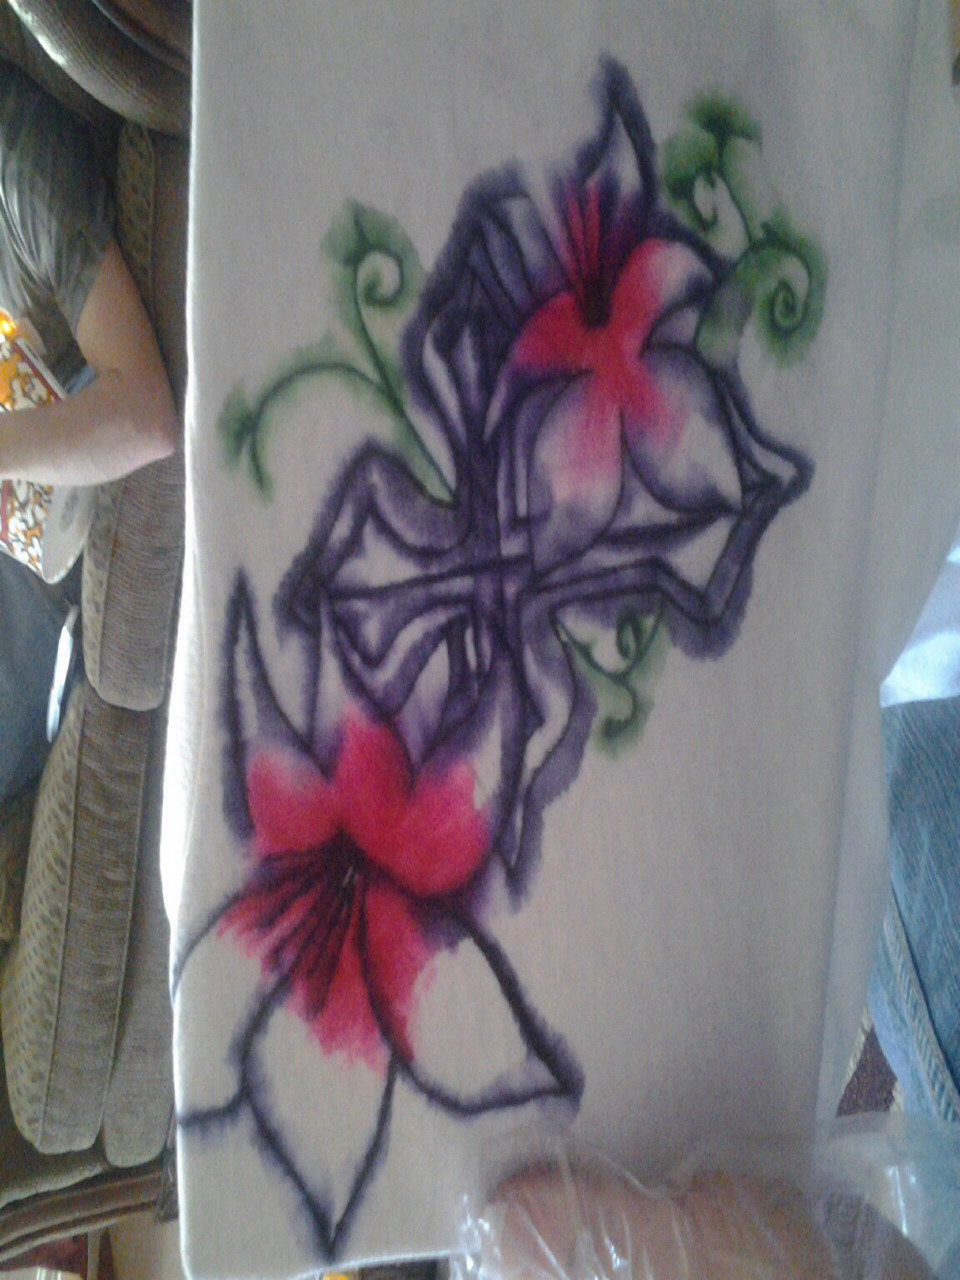 Put a white shirt on card board Use sharpies to draw a design you can even use stencils  put rubbing alcohol all over the design and rap it in plastic rap let it sit for 24 hours wash and dry! This is a super easy fun project to do great for kids!